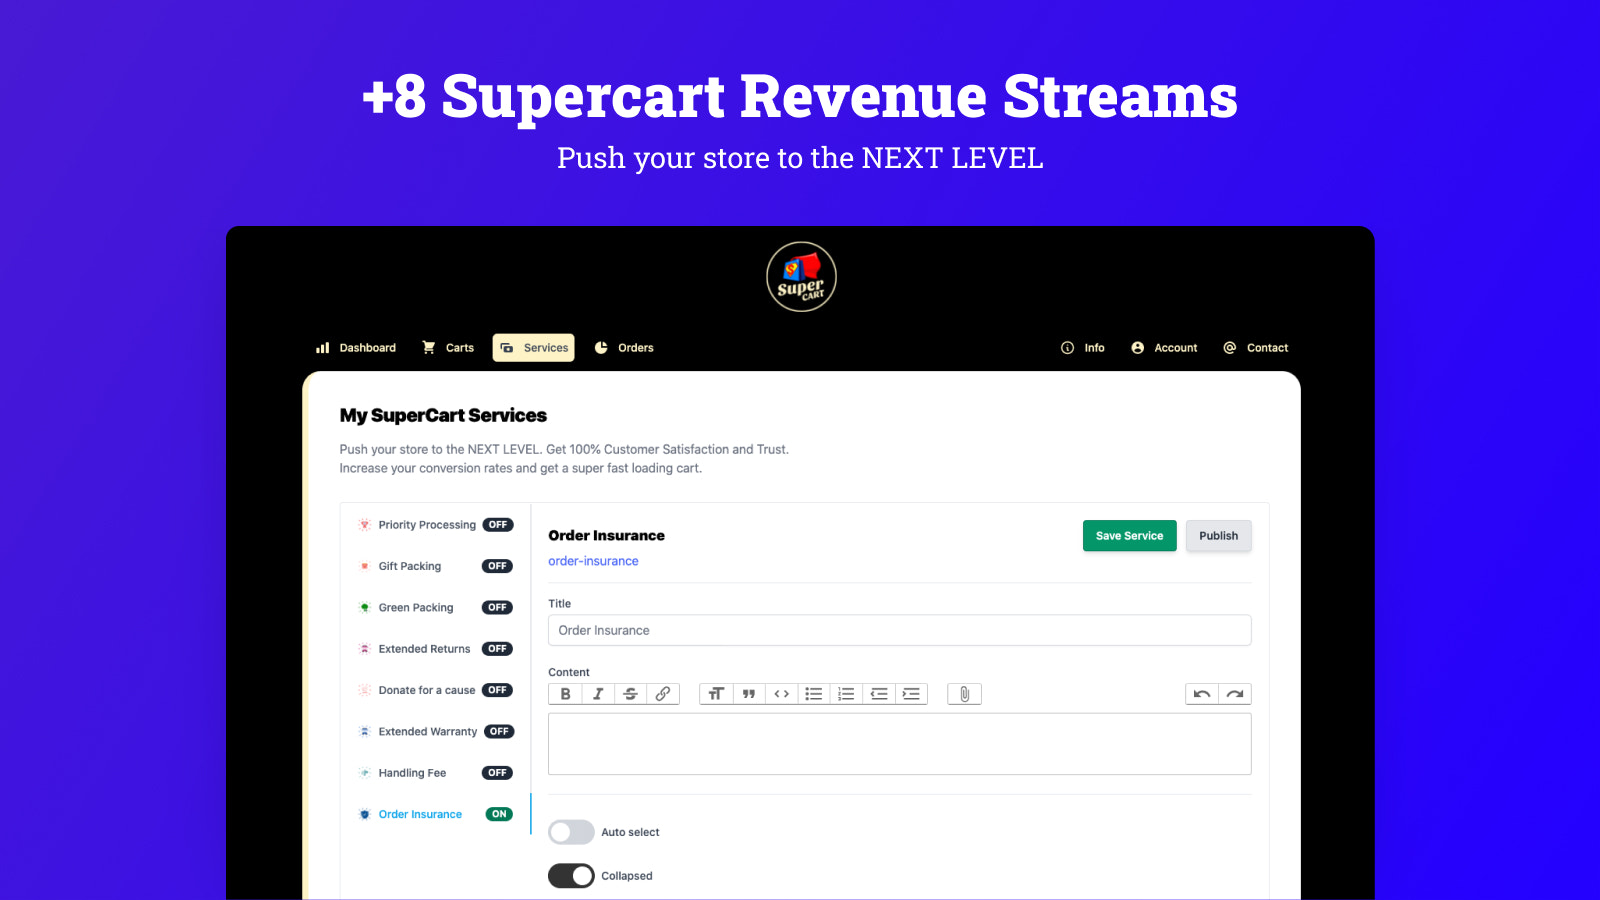 +8 Supercart Revenue Streams and Cart Services